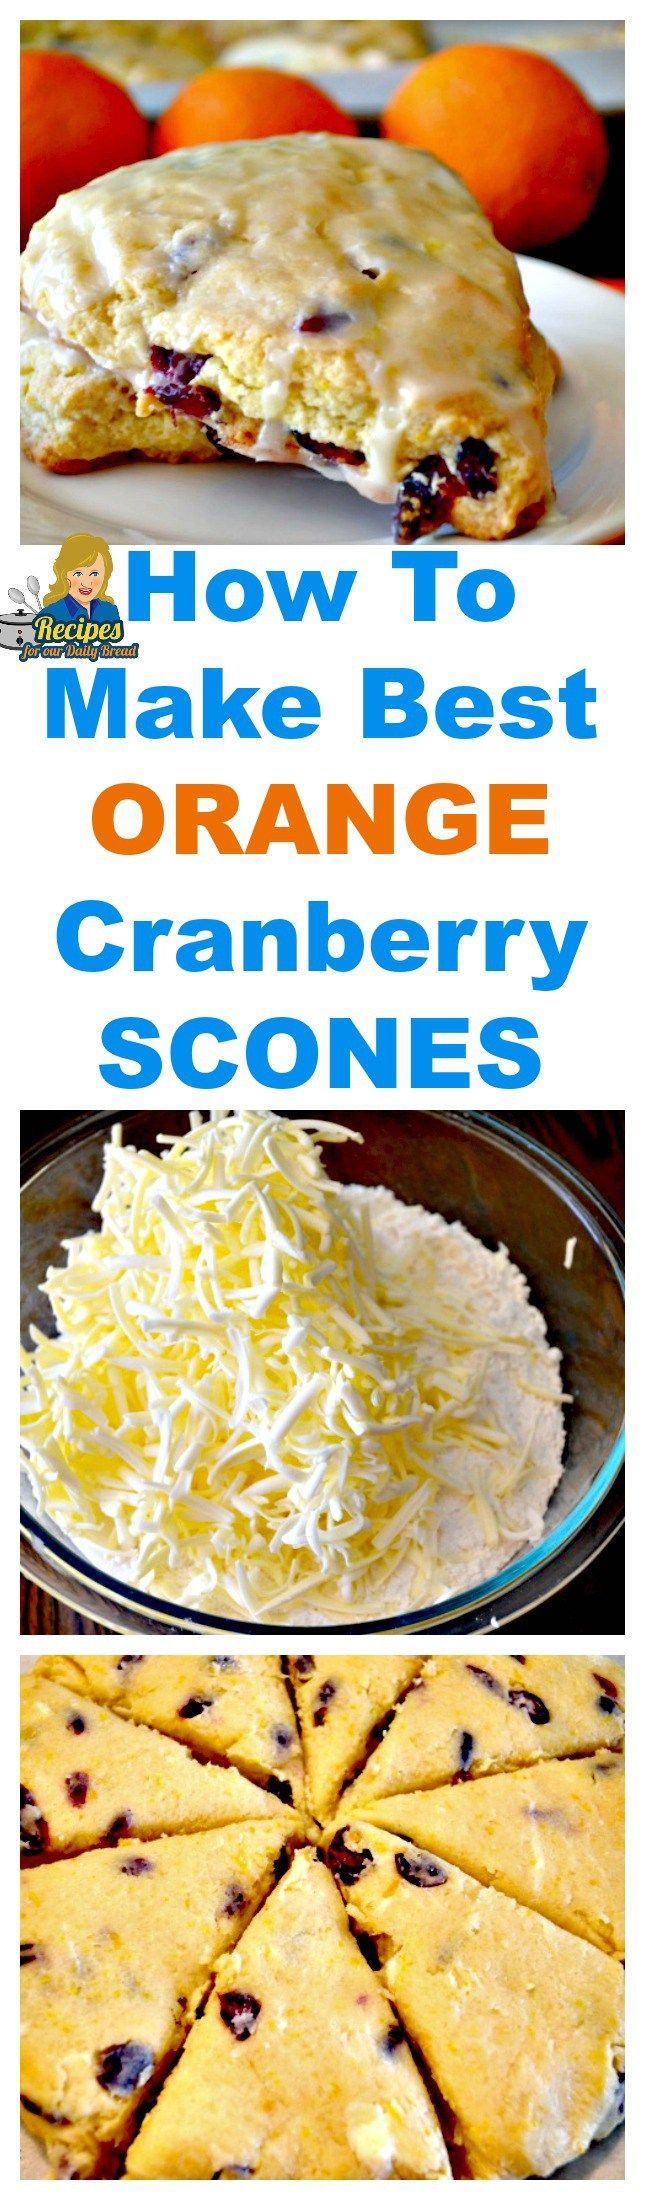 HOW TO MAKE BEST ORANGE CRANBERRY SCONES